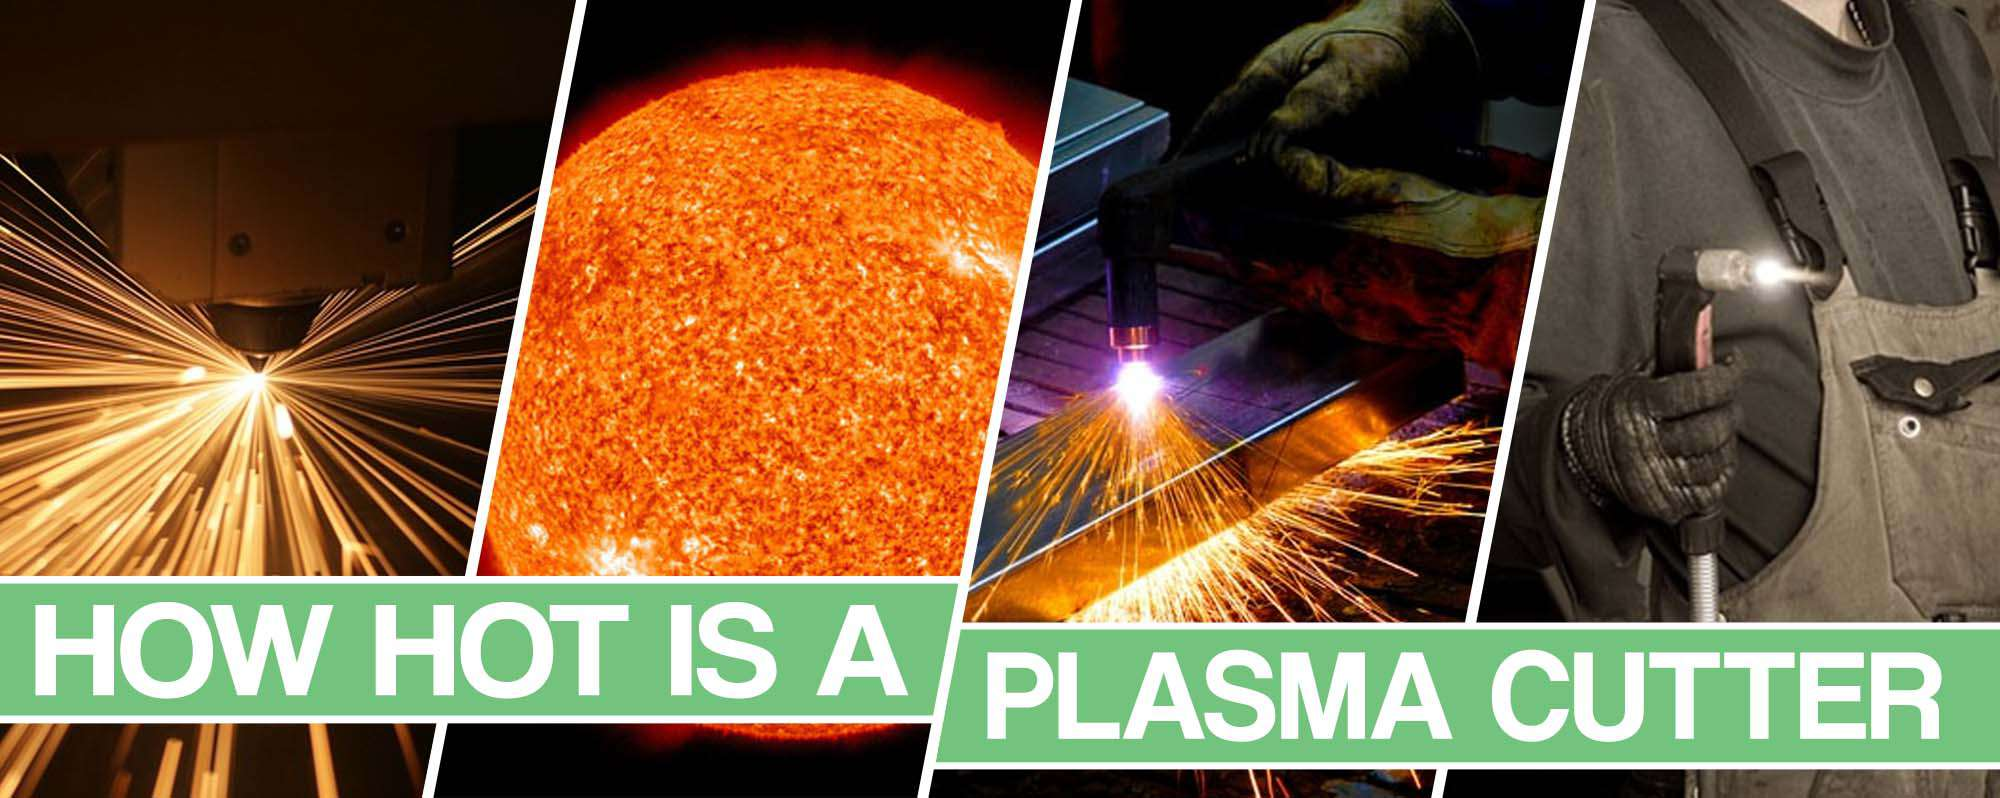 image showing the plasma cutter heat. image tittle: How Hot Is a Plasma Cutter?